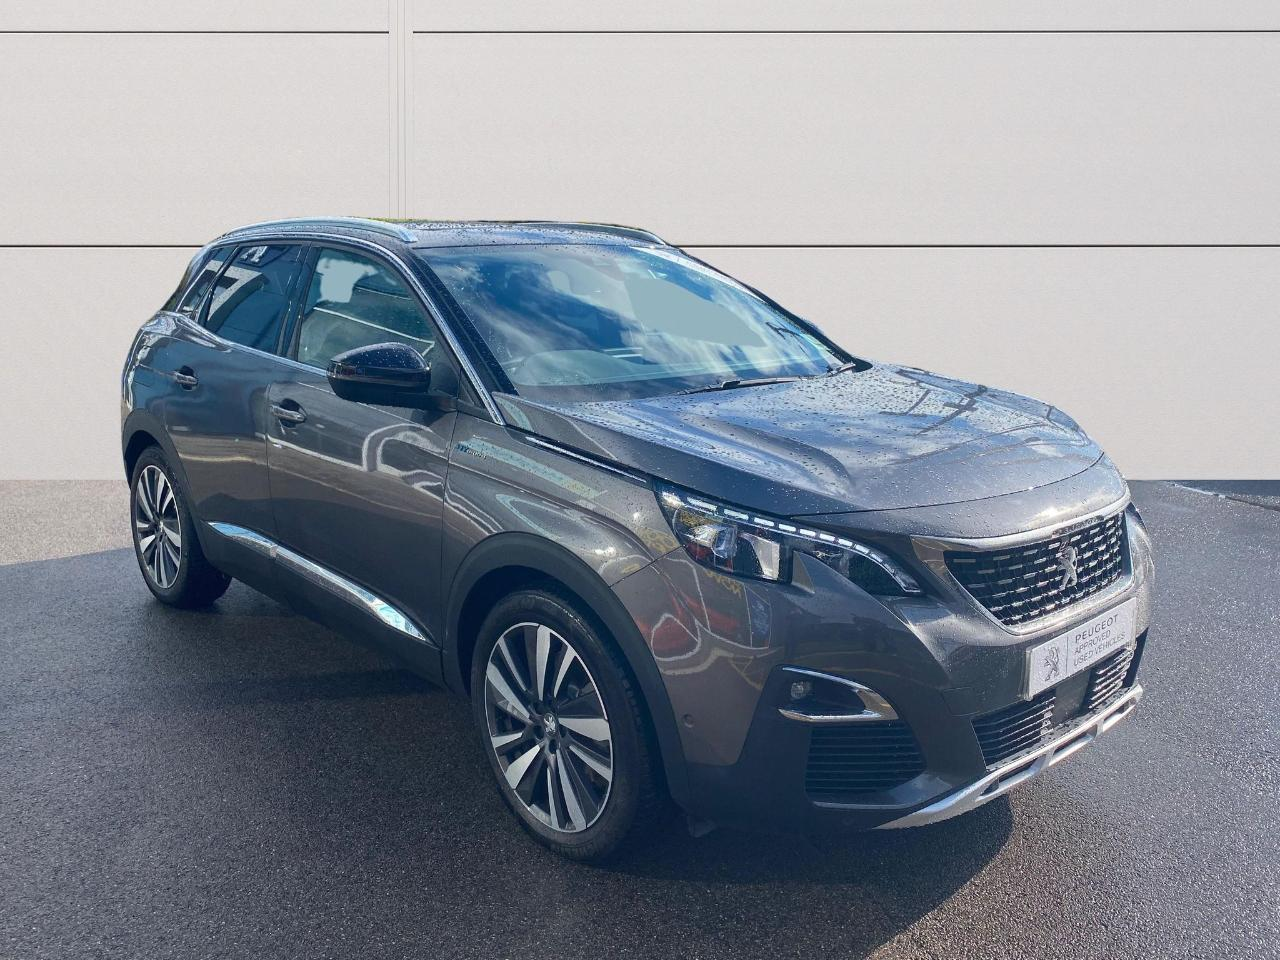 Peugeot 3008 1.6 13.2kWh GT SUV 5dr Petrol Plug-in Hybrid e-EAT